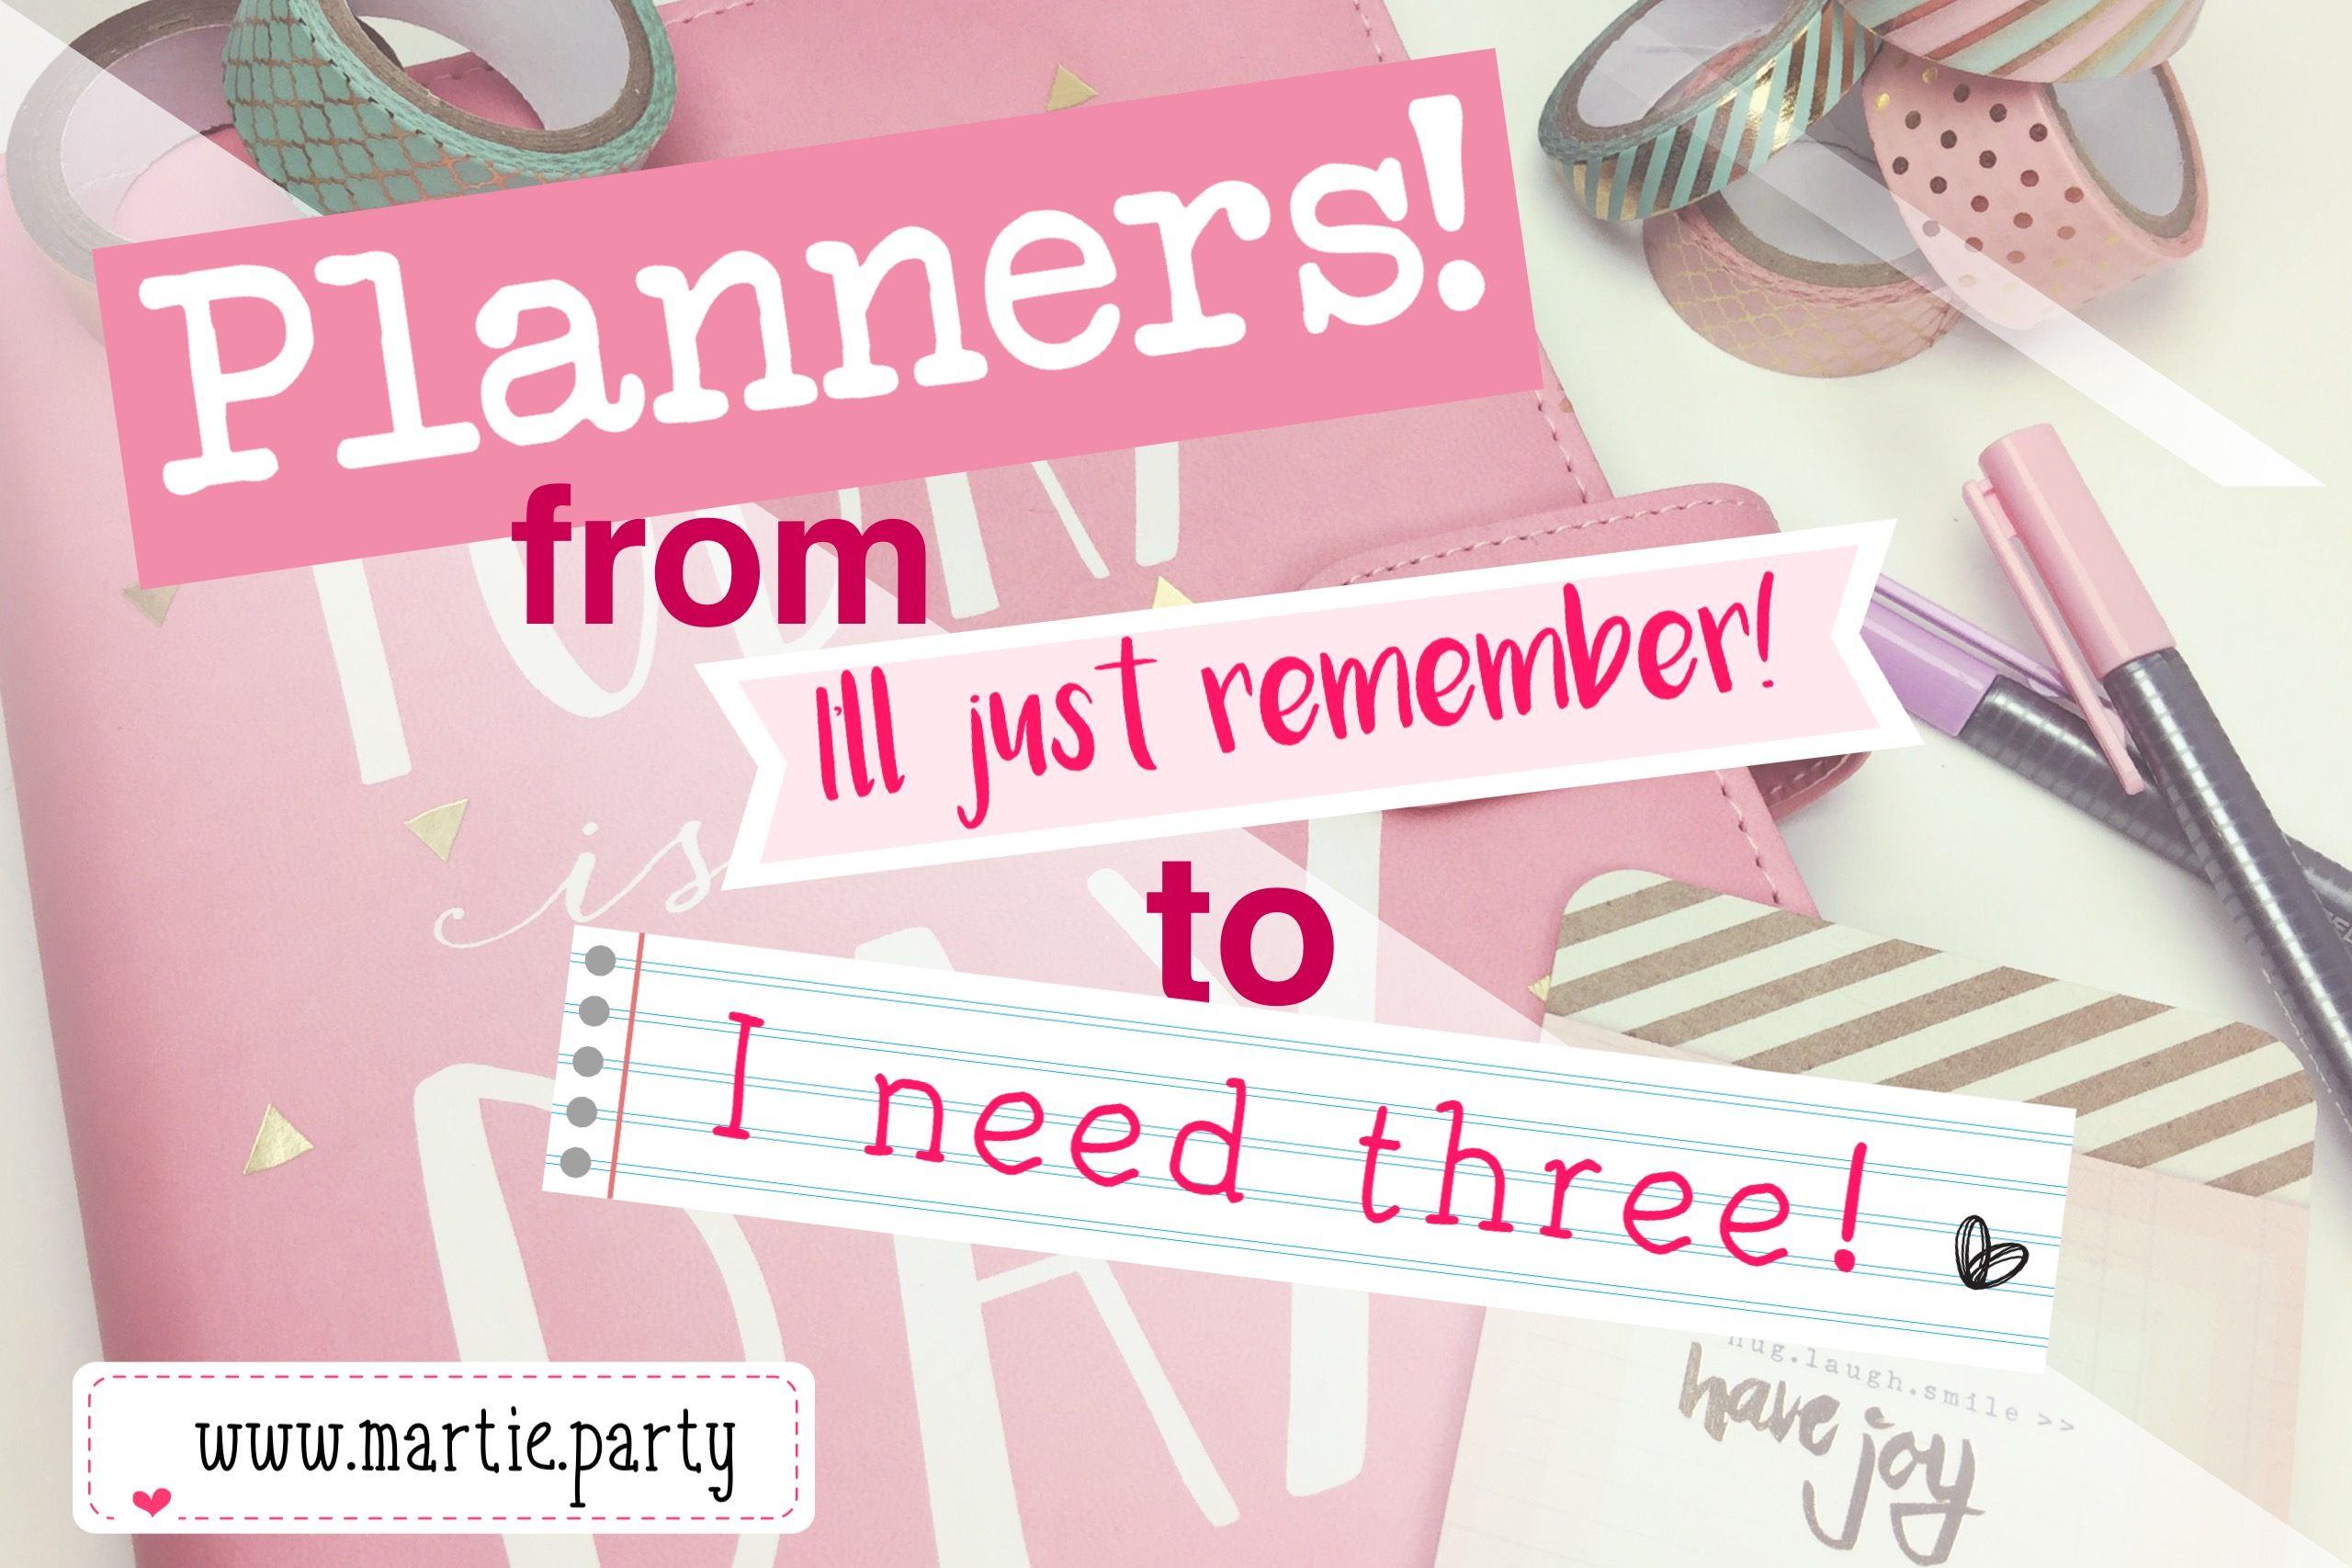 "Planners! from ""I'll just remember!"" to ""I need three!"""